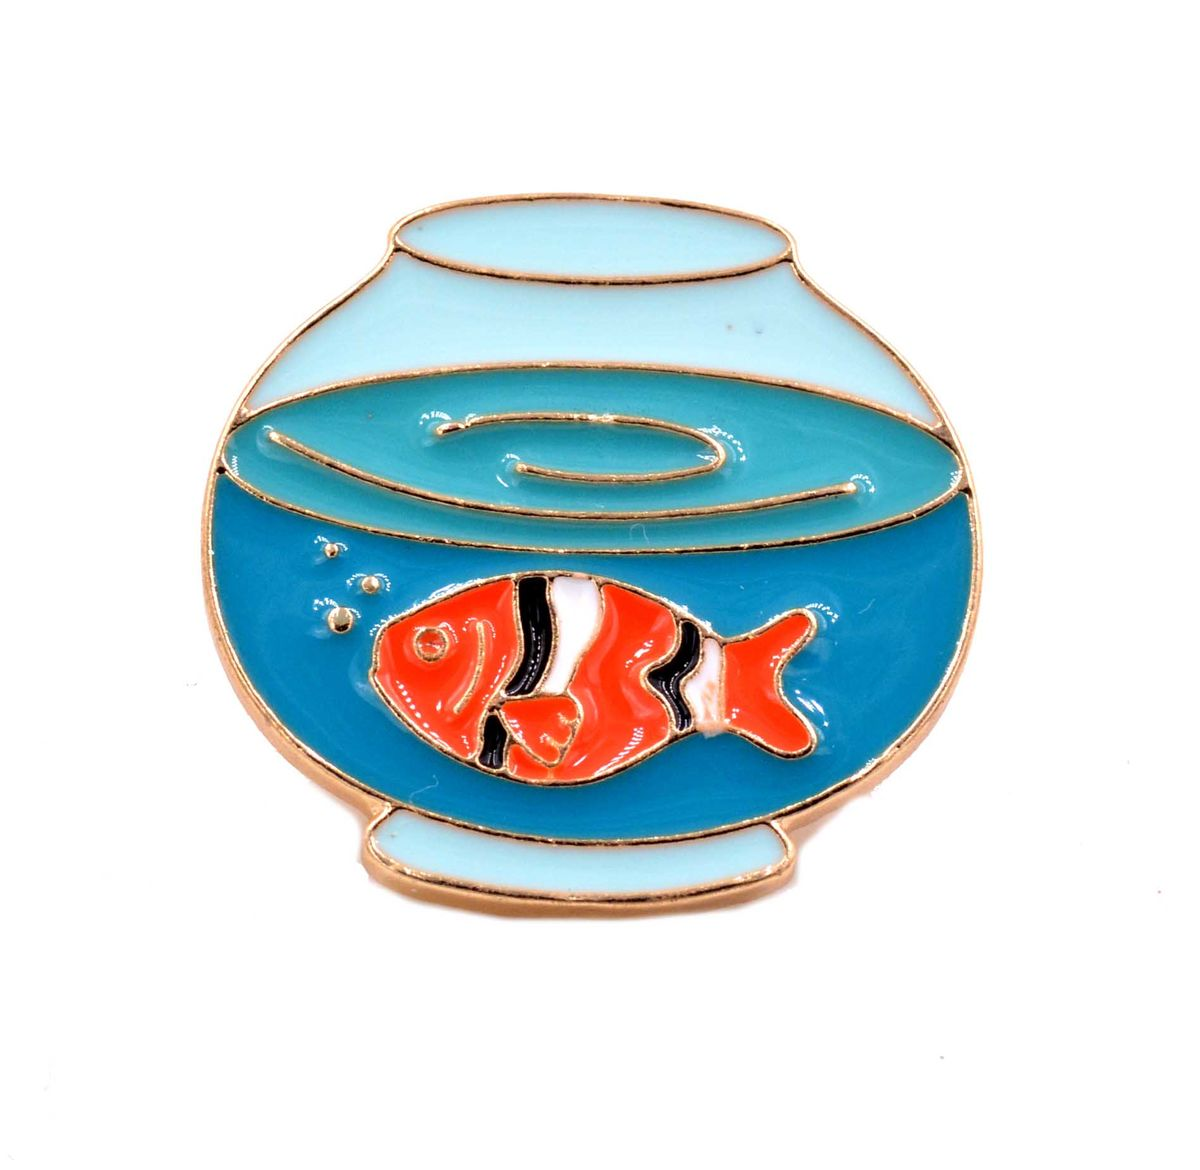 Gold Plated Cute Little Fish Bowl Lapel Pin Brooch - Hand Painted Enamel -  Cute and Quirky - in Organza Bag